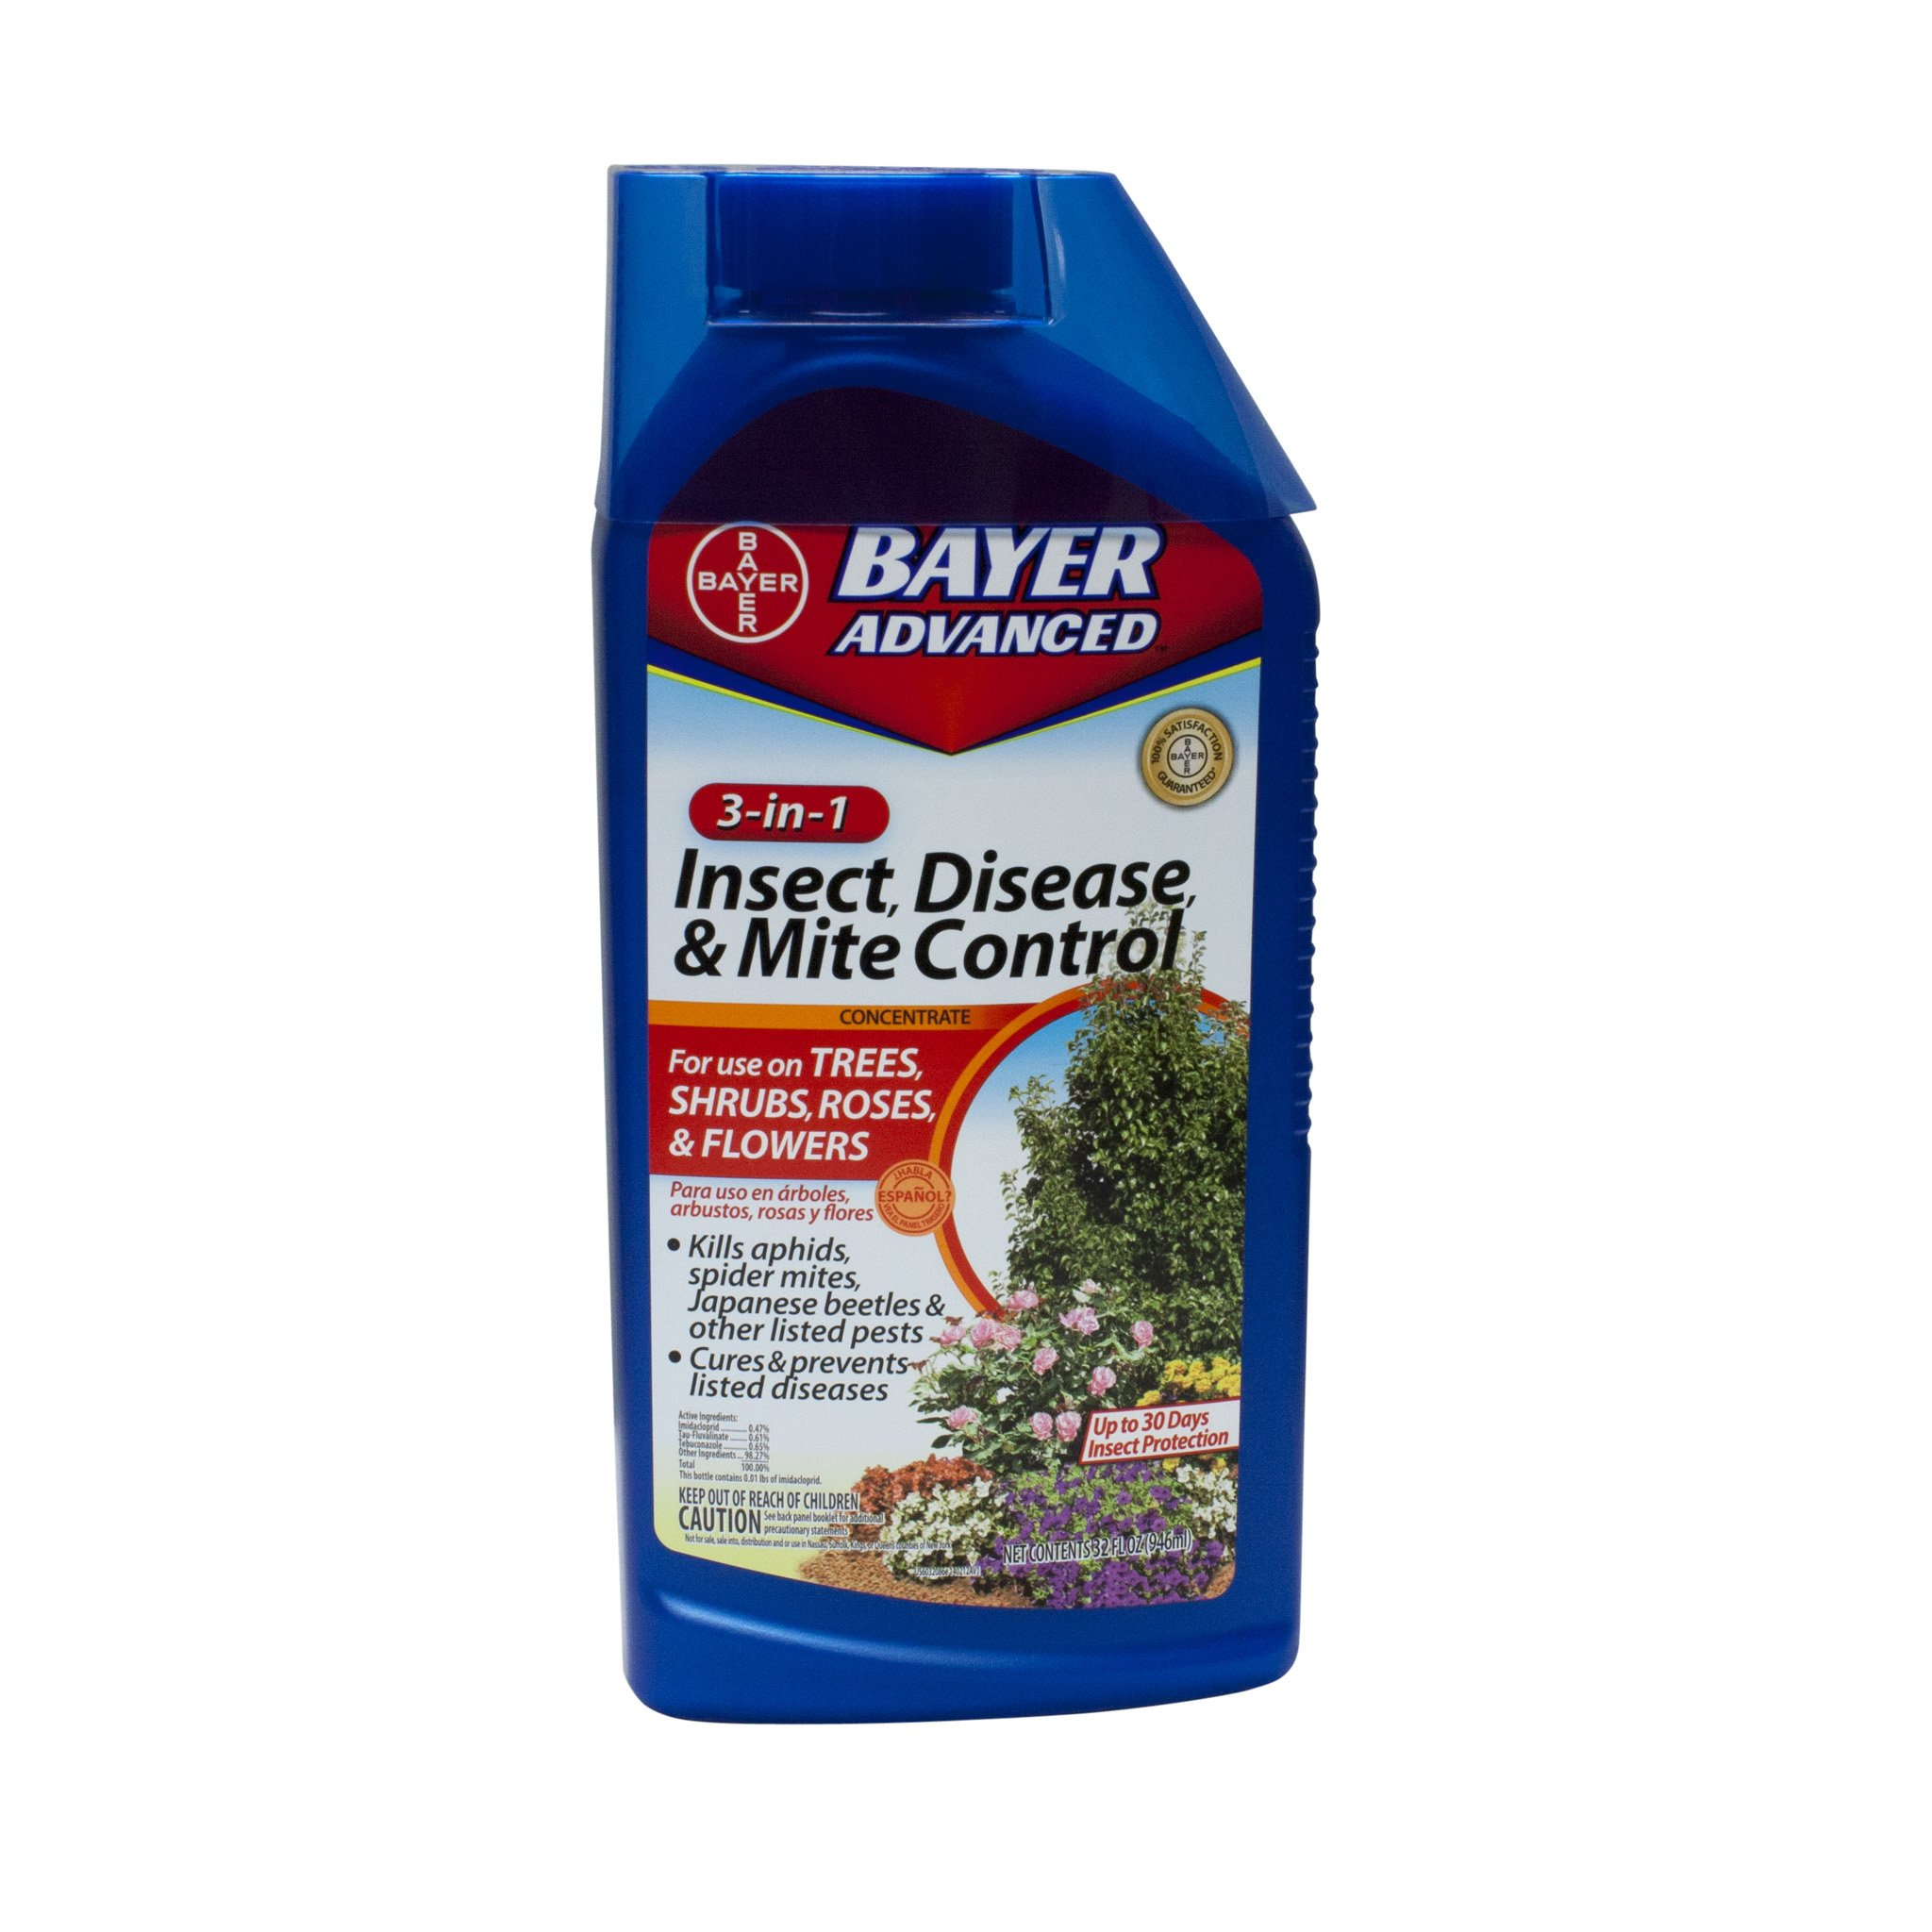 Bayer 3-in-1 Insect Disease & Mite Control Concentrate - 32 oz. #701285B by Bayer